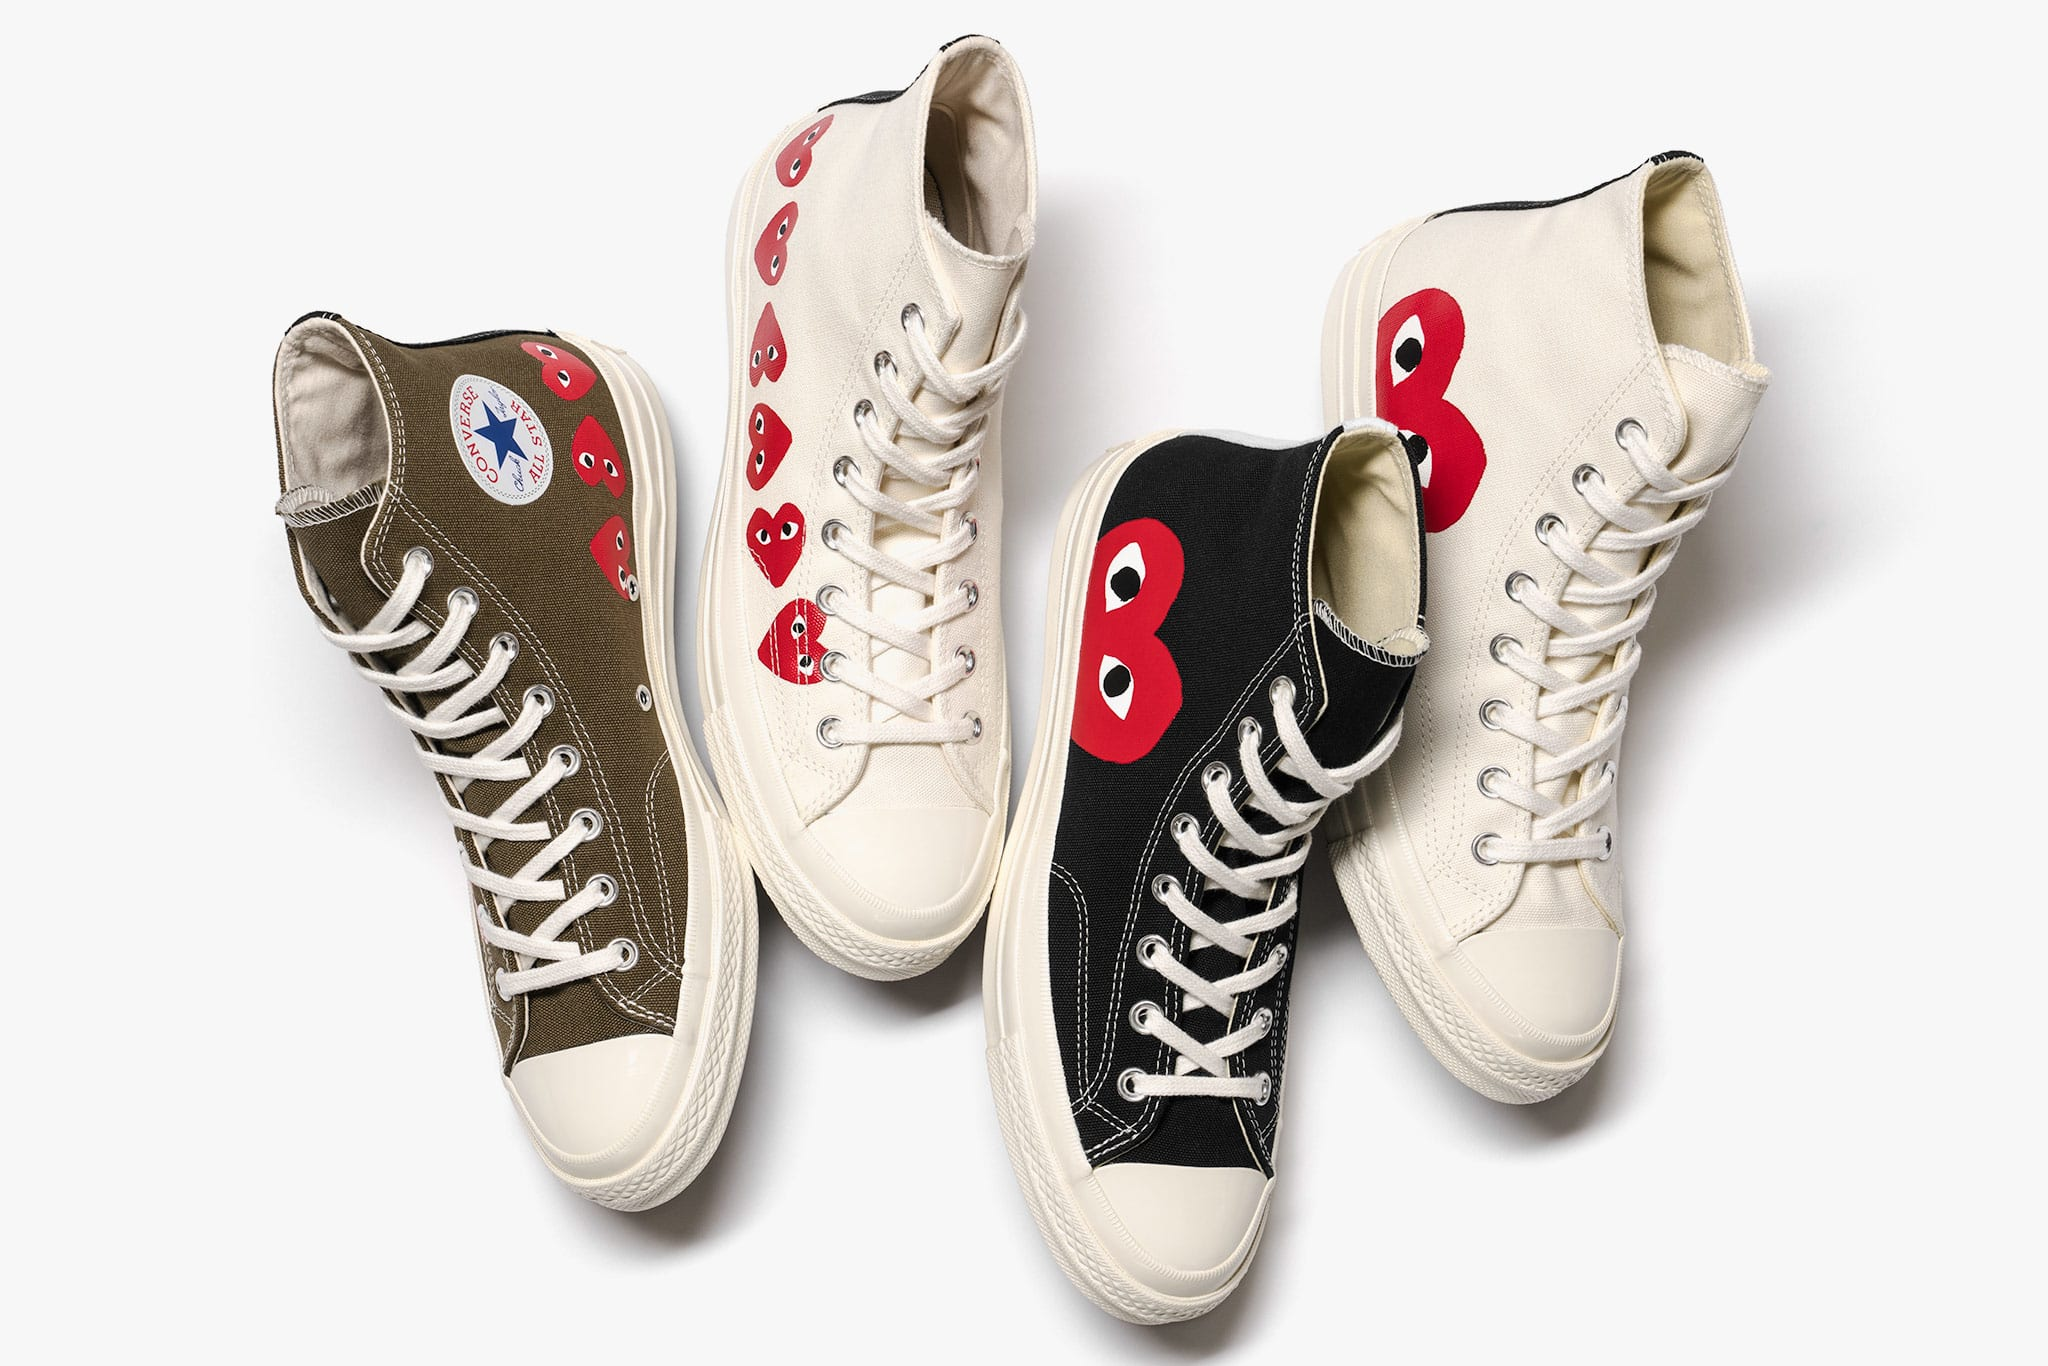 d16ea6c90be CDG Converses Men39s Fashion in 2019 t Mens clothing